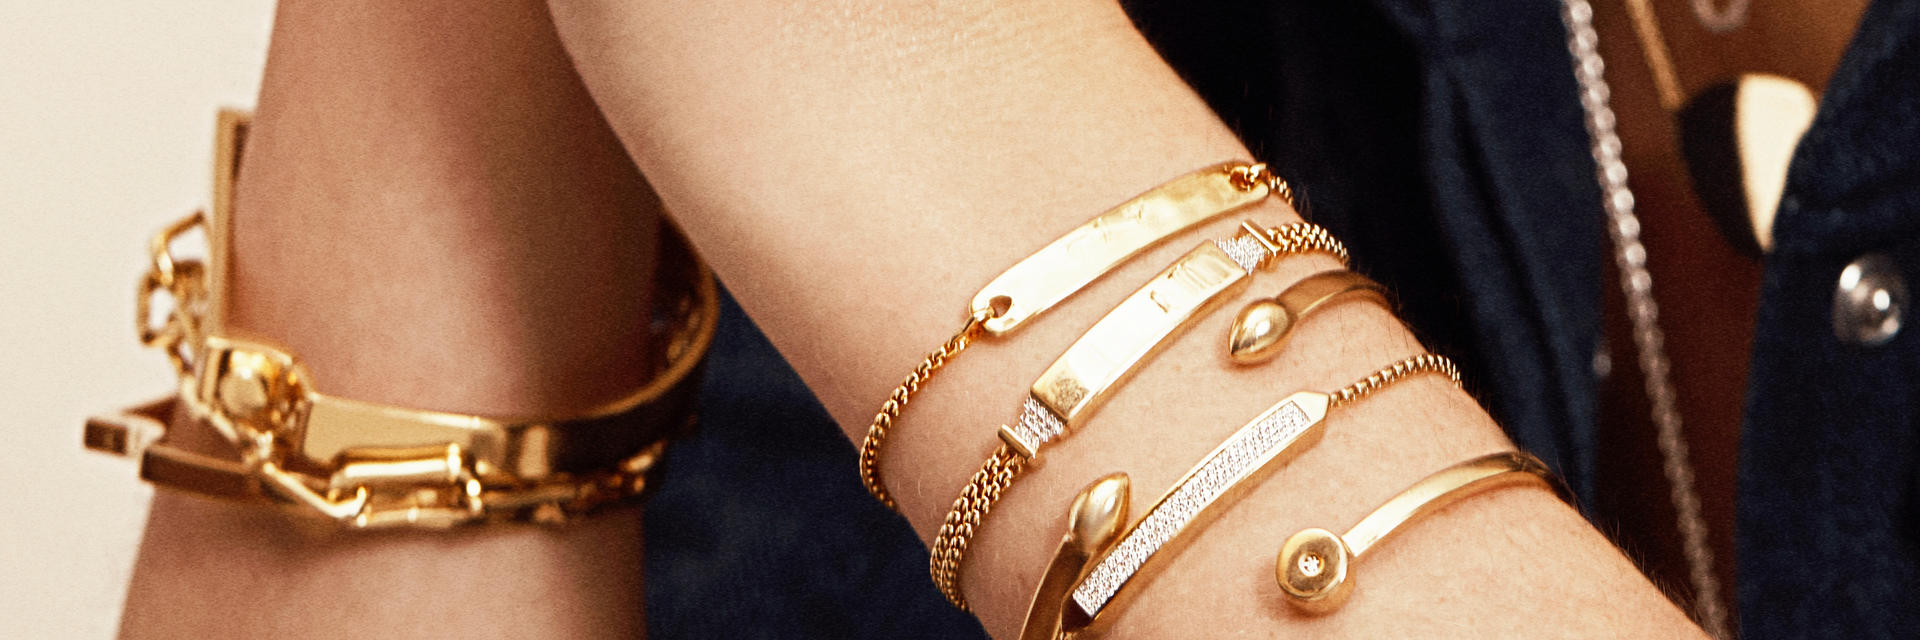 how many styles of bracelet are there?